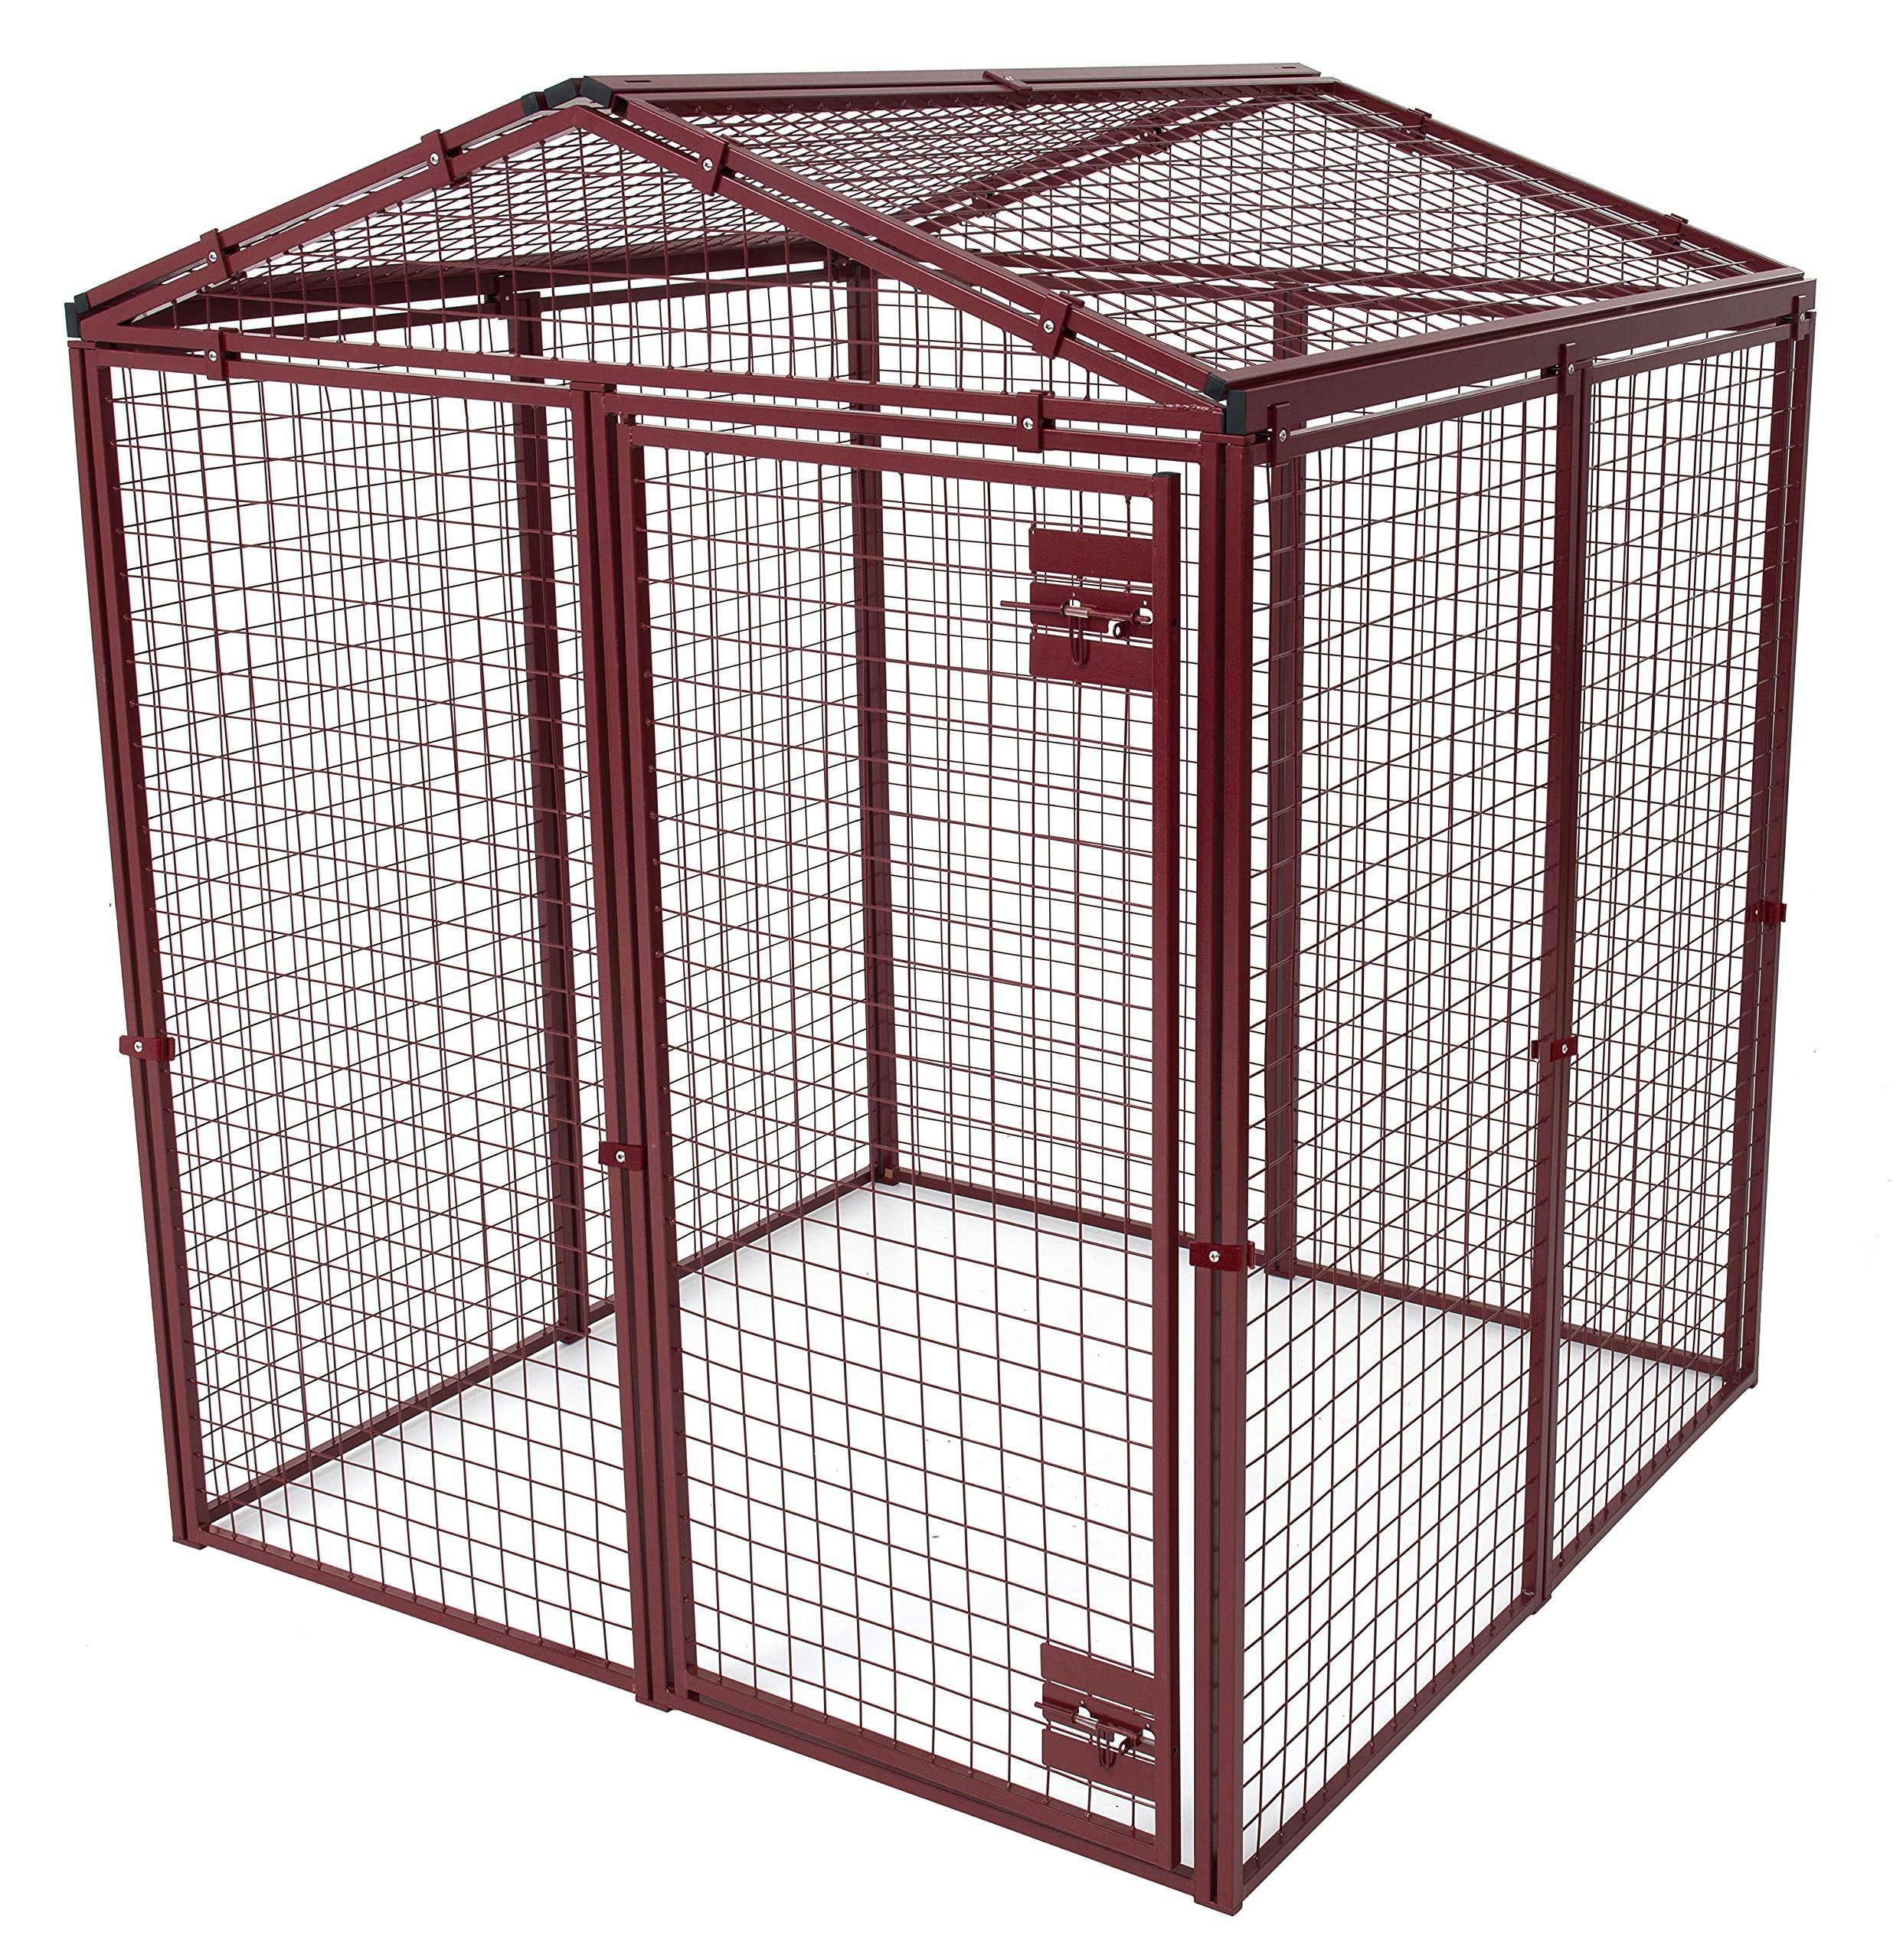 Animal House Heavy Duty Gable Covered Protective Pet Kennel (6.2'Hx5'Lx5'W) 128.2 lbs by Animal House